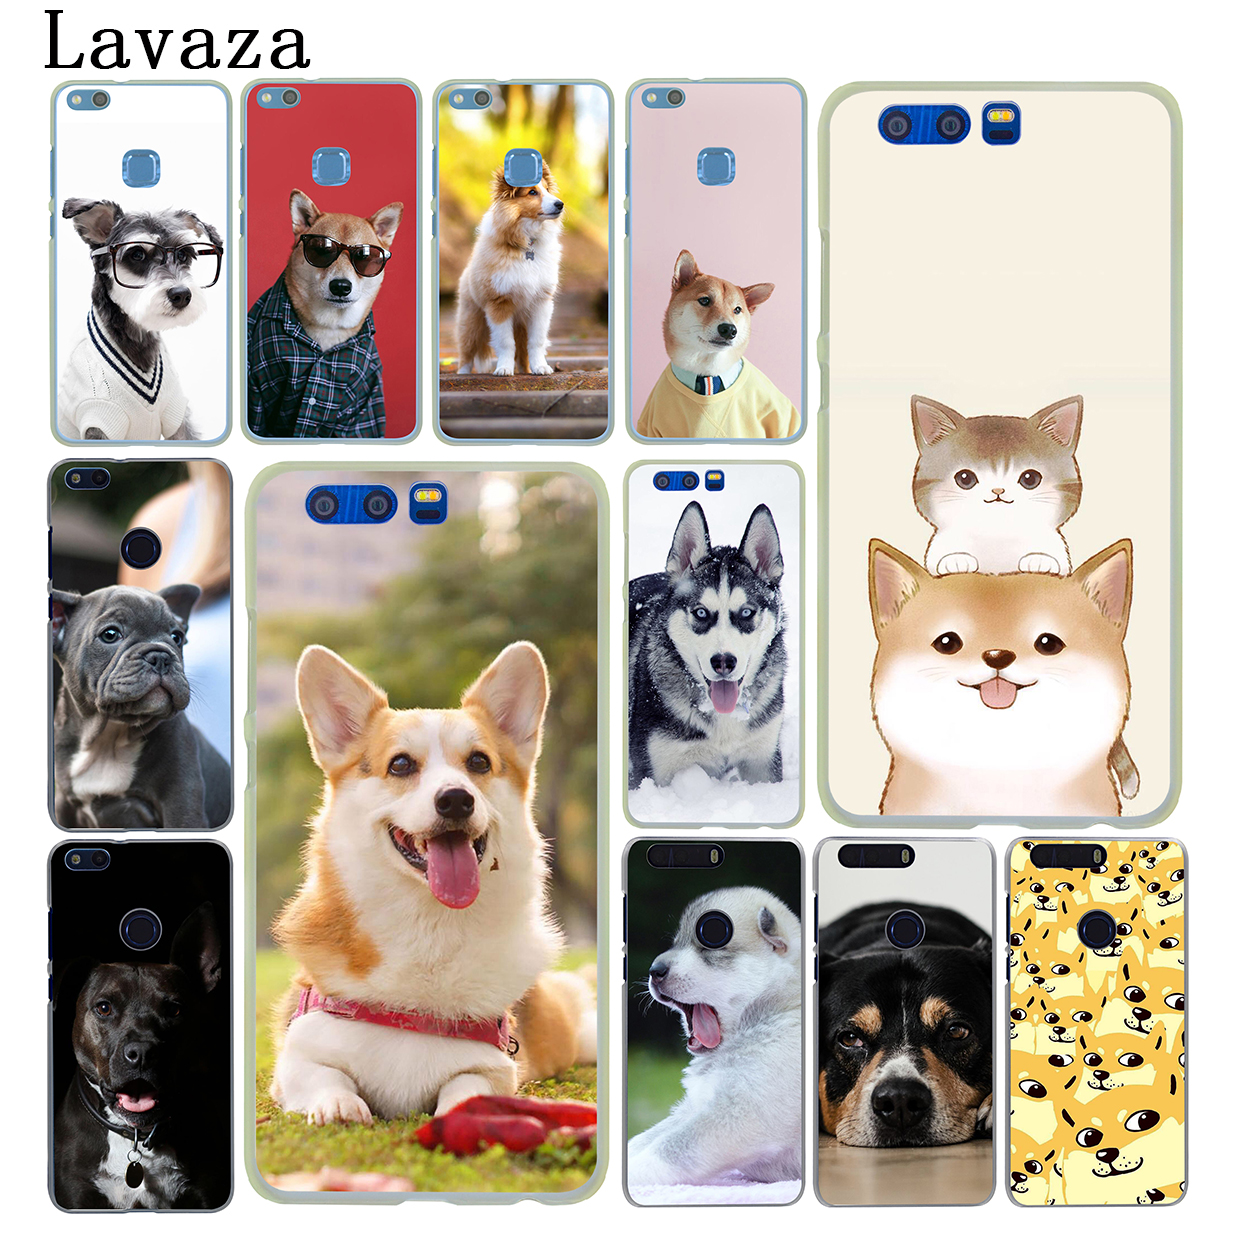 Lavaza Cute French Bulldog corgi Golden Retriever Dog Case for Huawei Y6 Y5 Y3 II Y7 2017 G7 Honor 9 8 Lite 7 7X 6 6X 6A 4C 4X